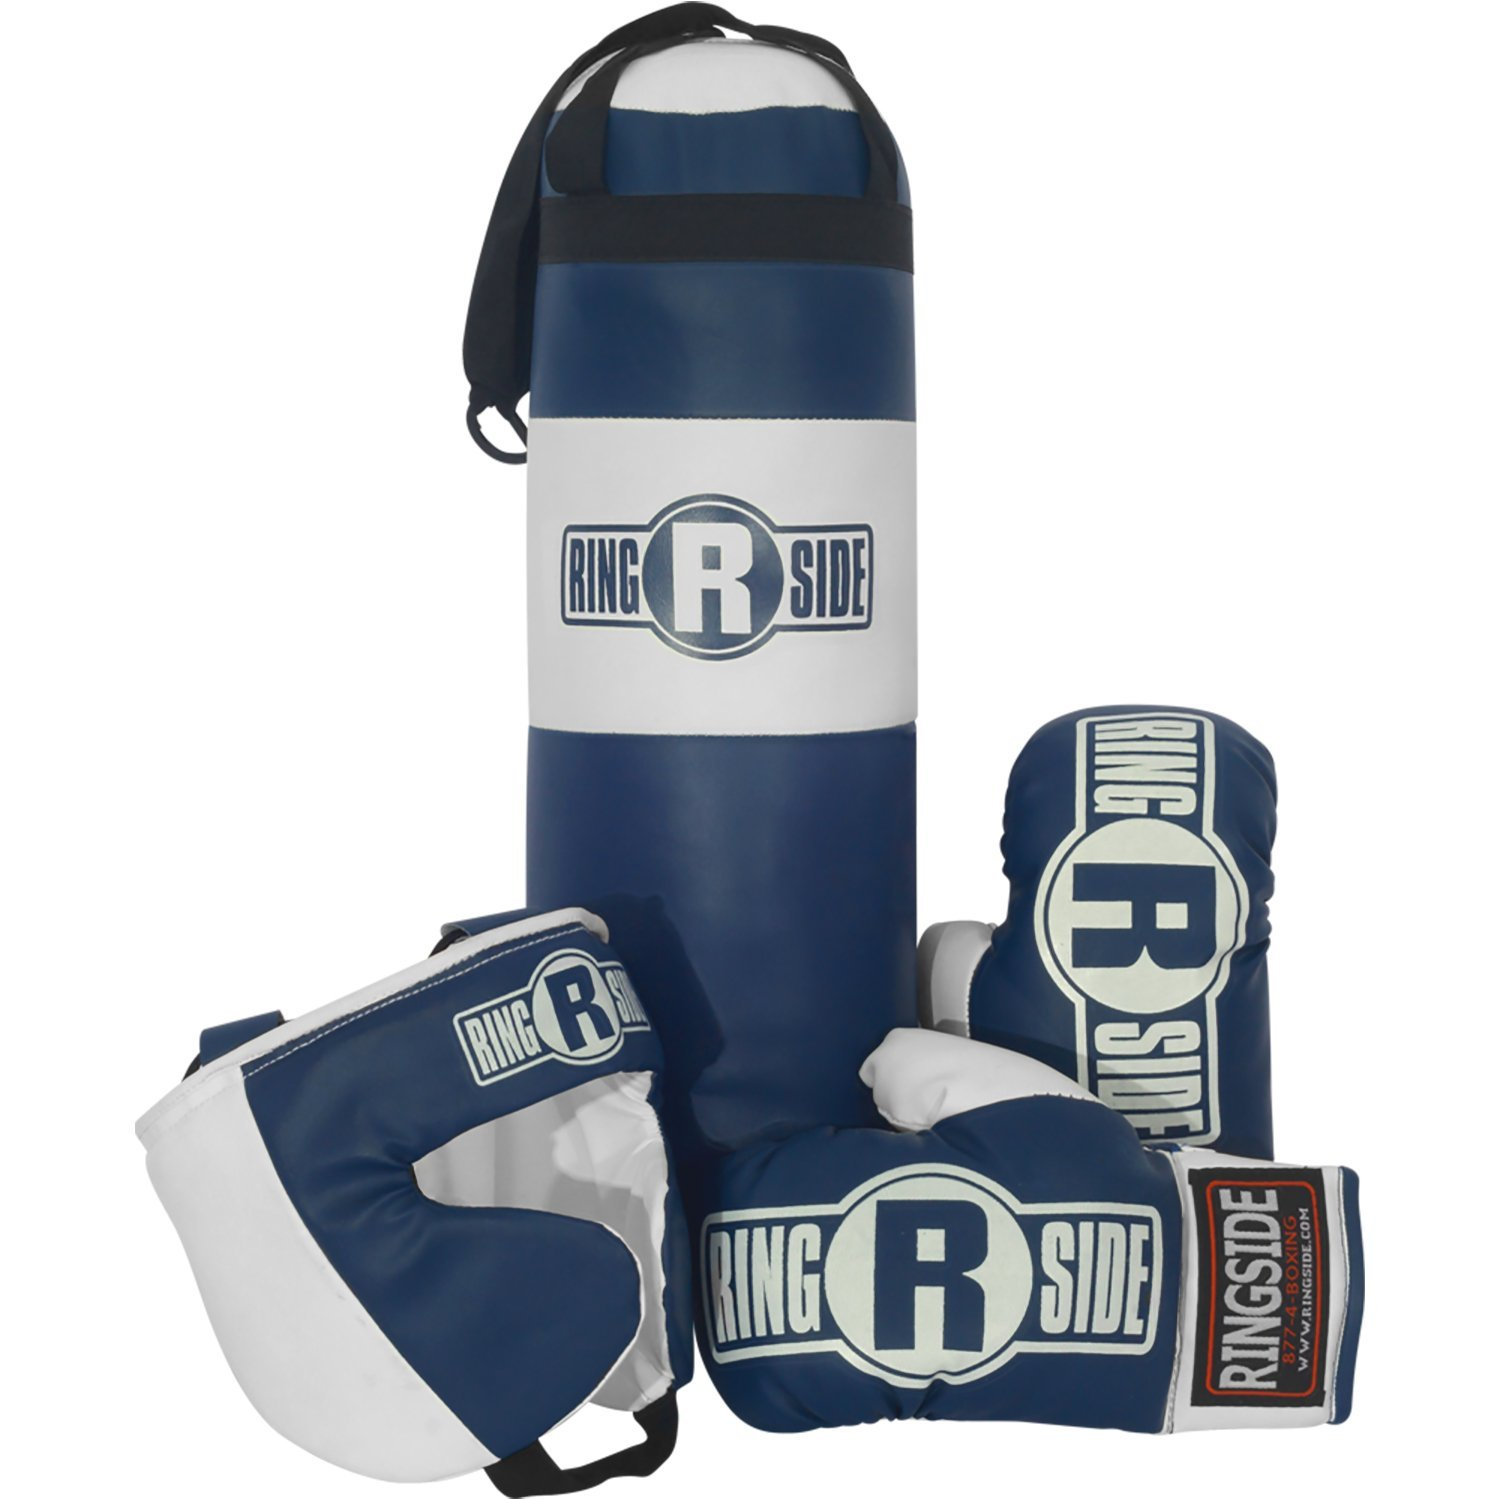 Ringside Kids Boxing Set (2-5 Year Old) KBOX BLACK